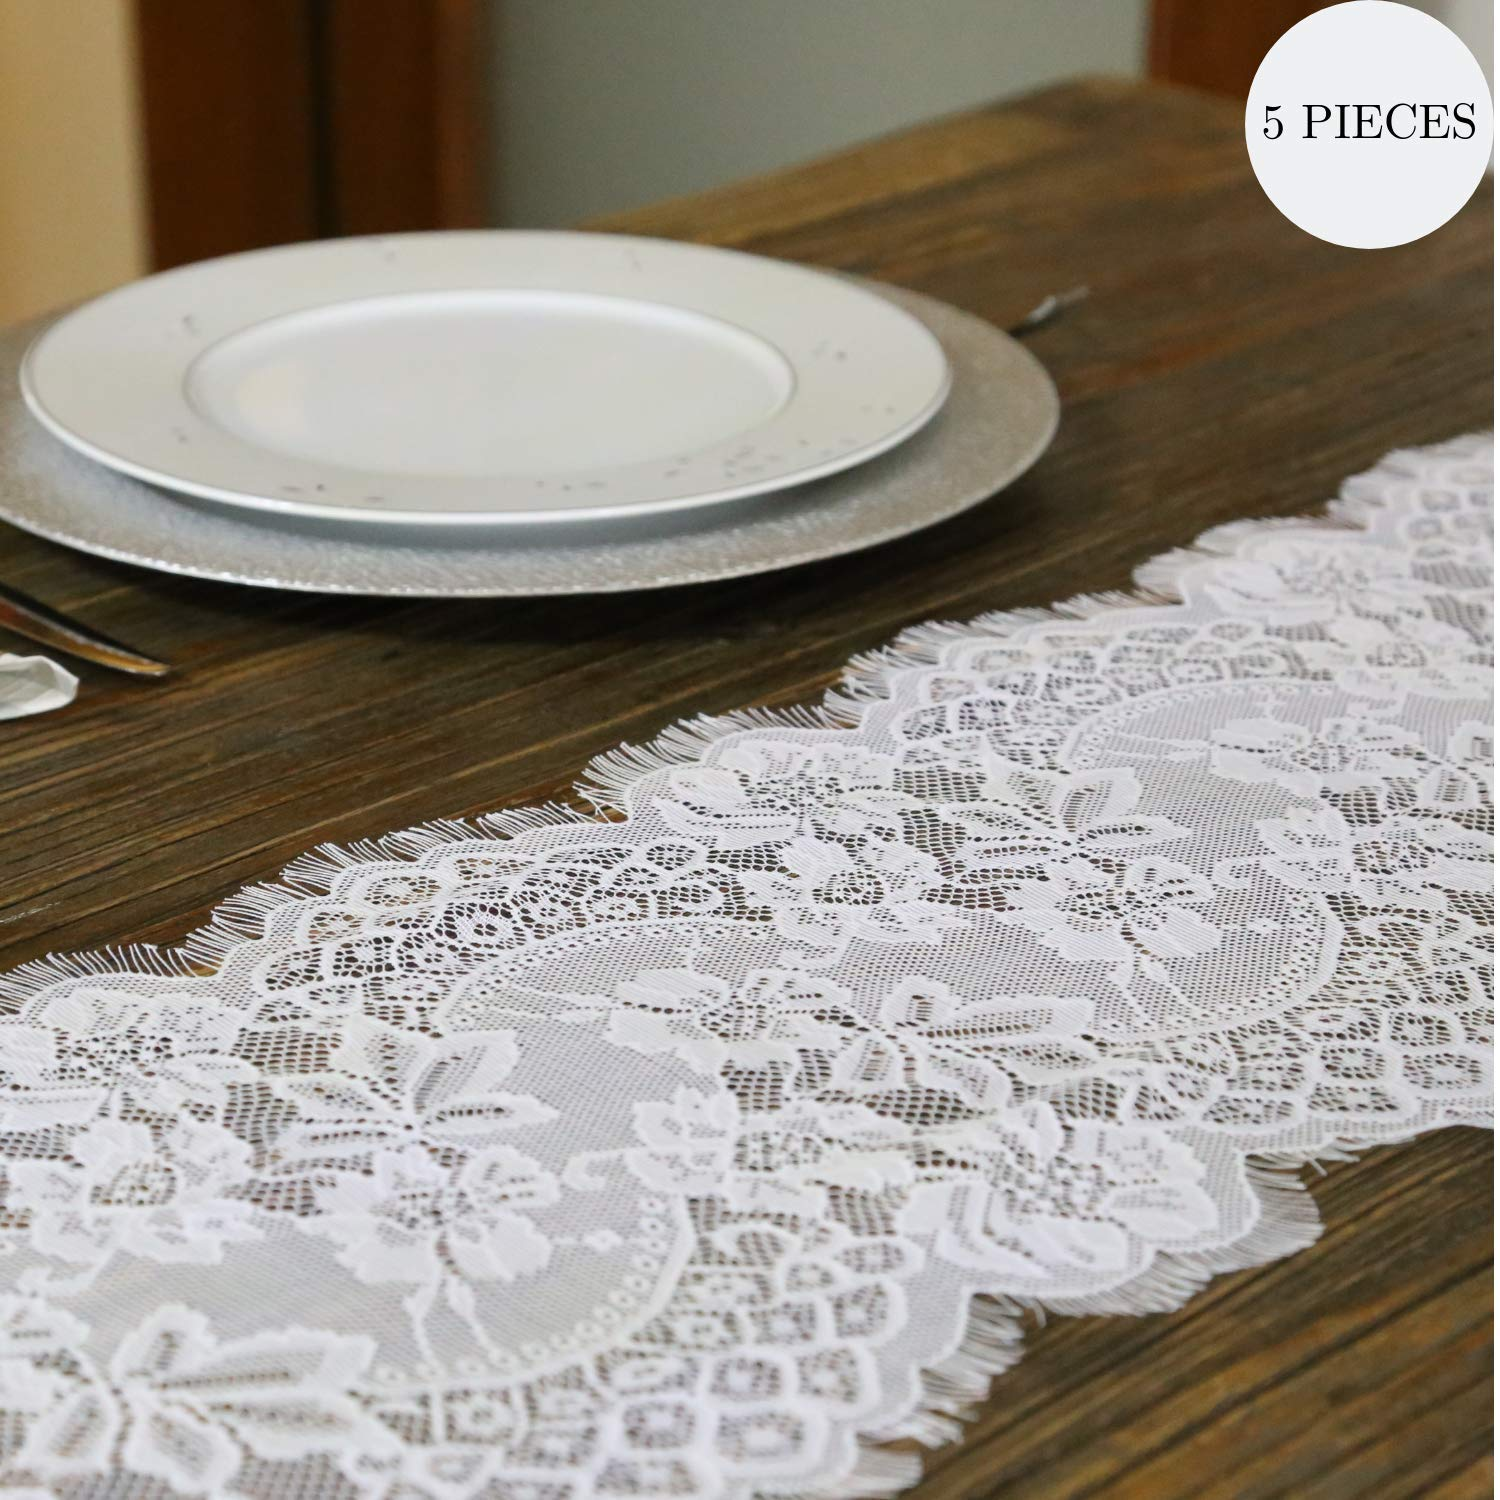 5 Pieces Feminen 20x120 Embroidered Floral Table Runner Vintage White Table Linens Exquisite Romantic Chic Wedding Reception Decoration Farmhouse